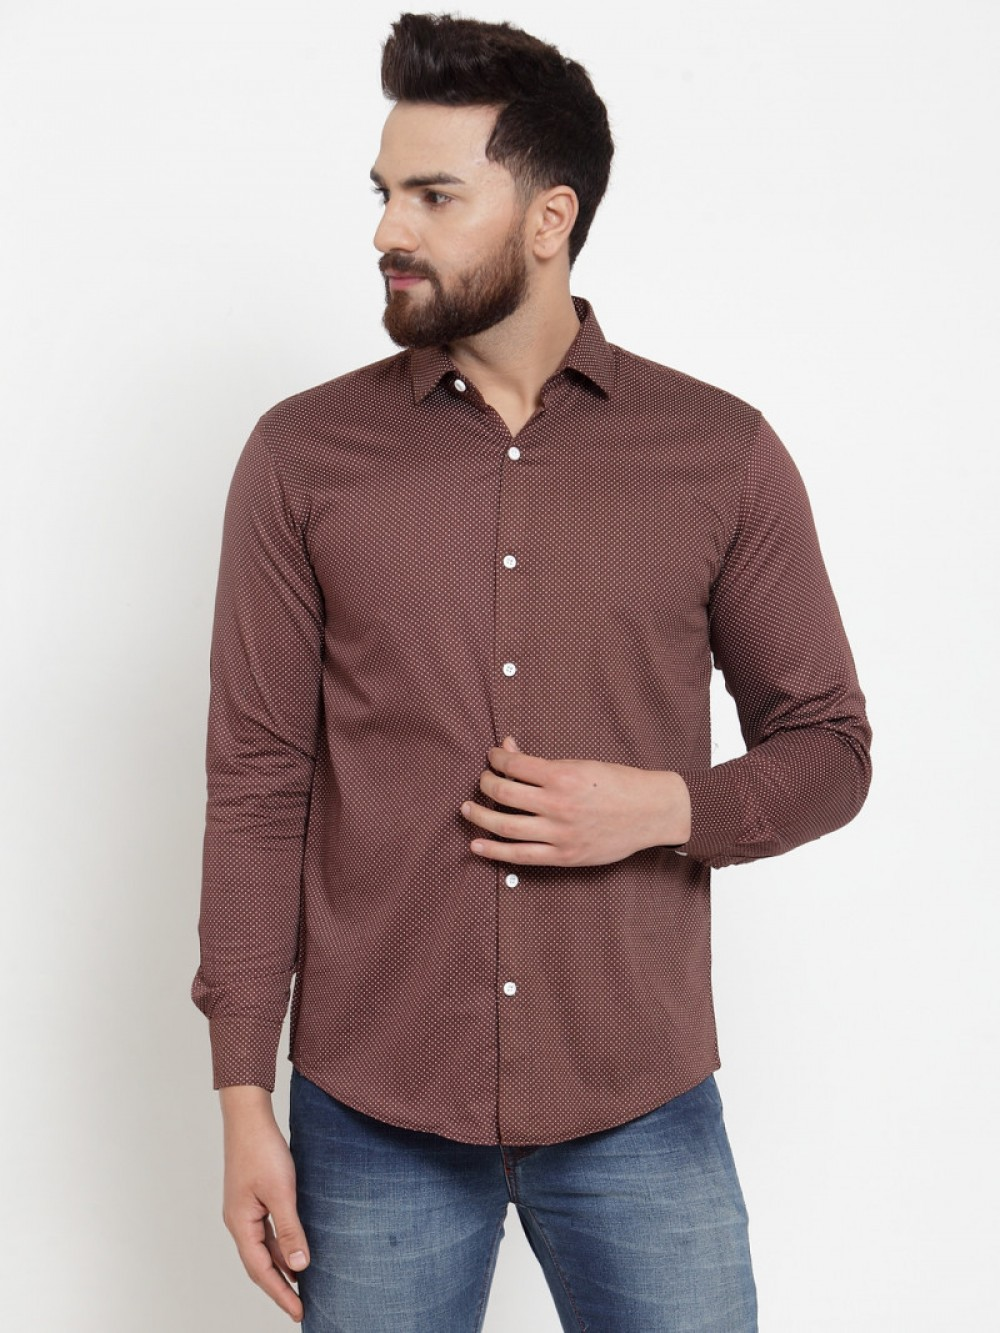 Brown Color Small Dott Shirt